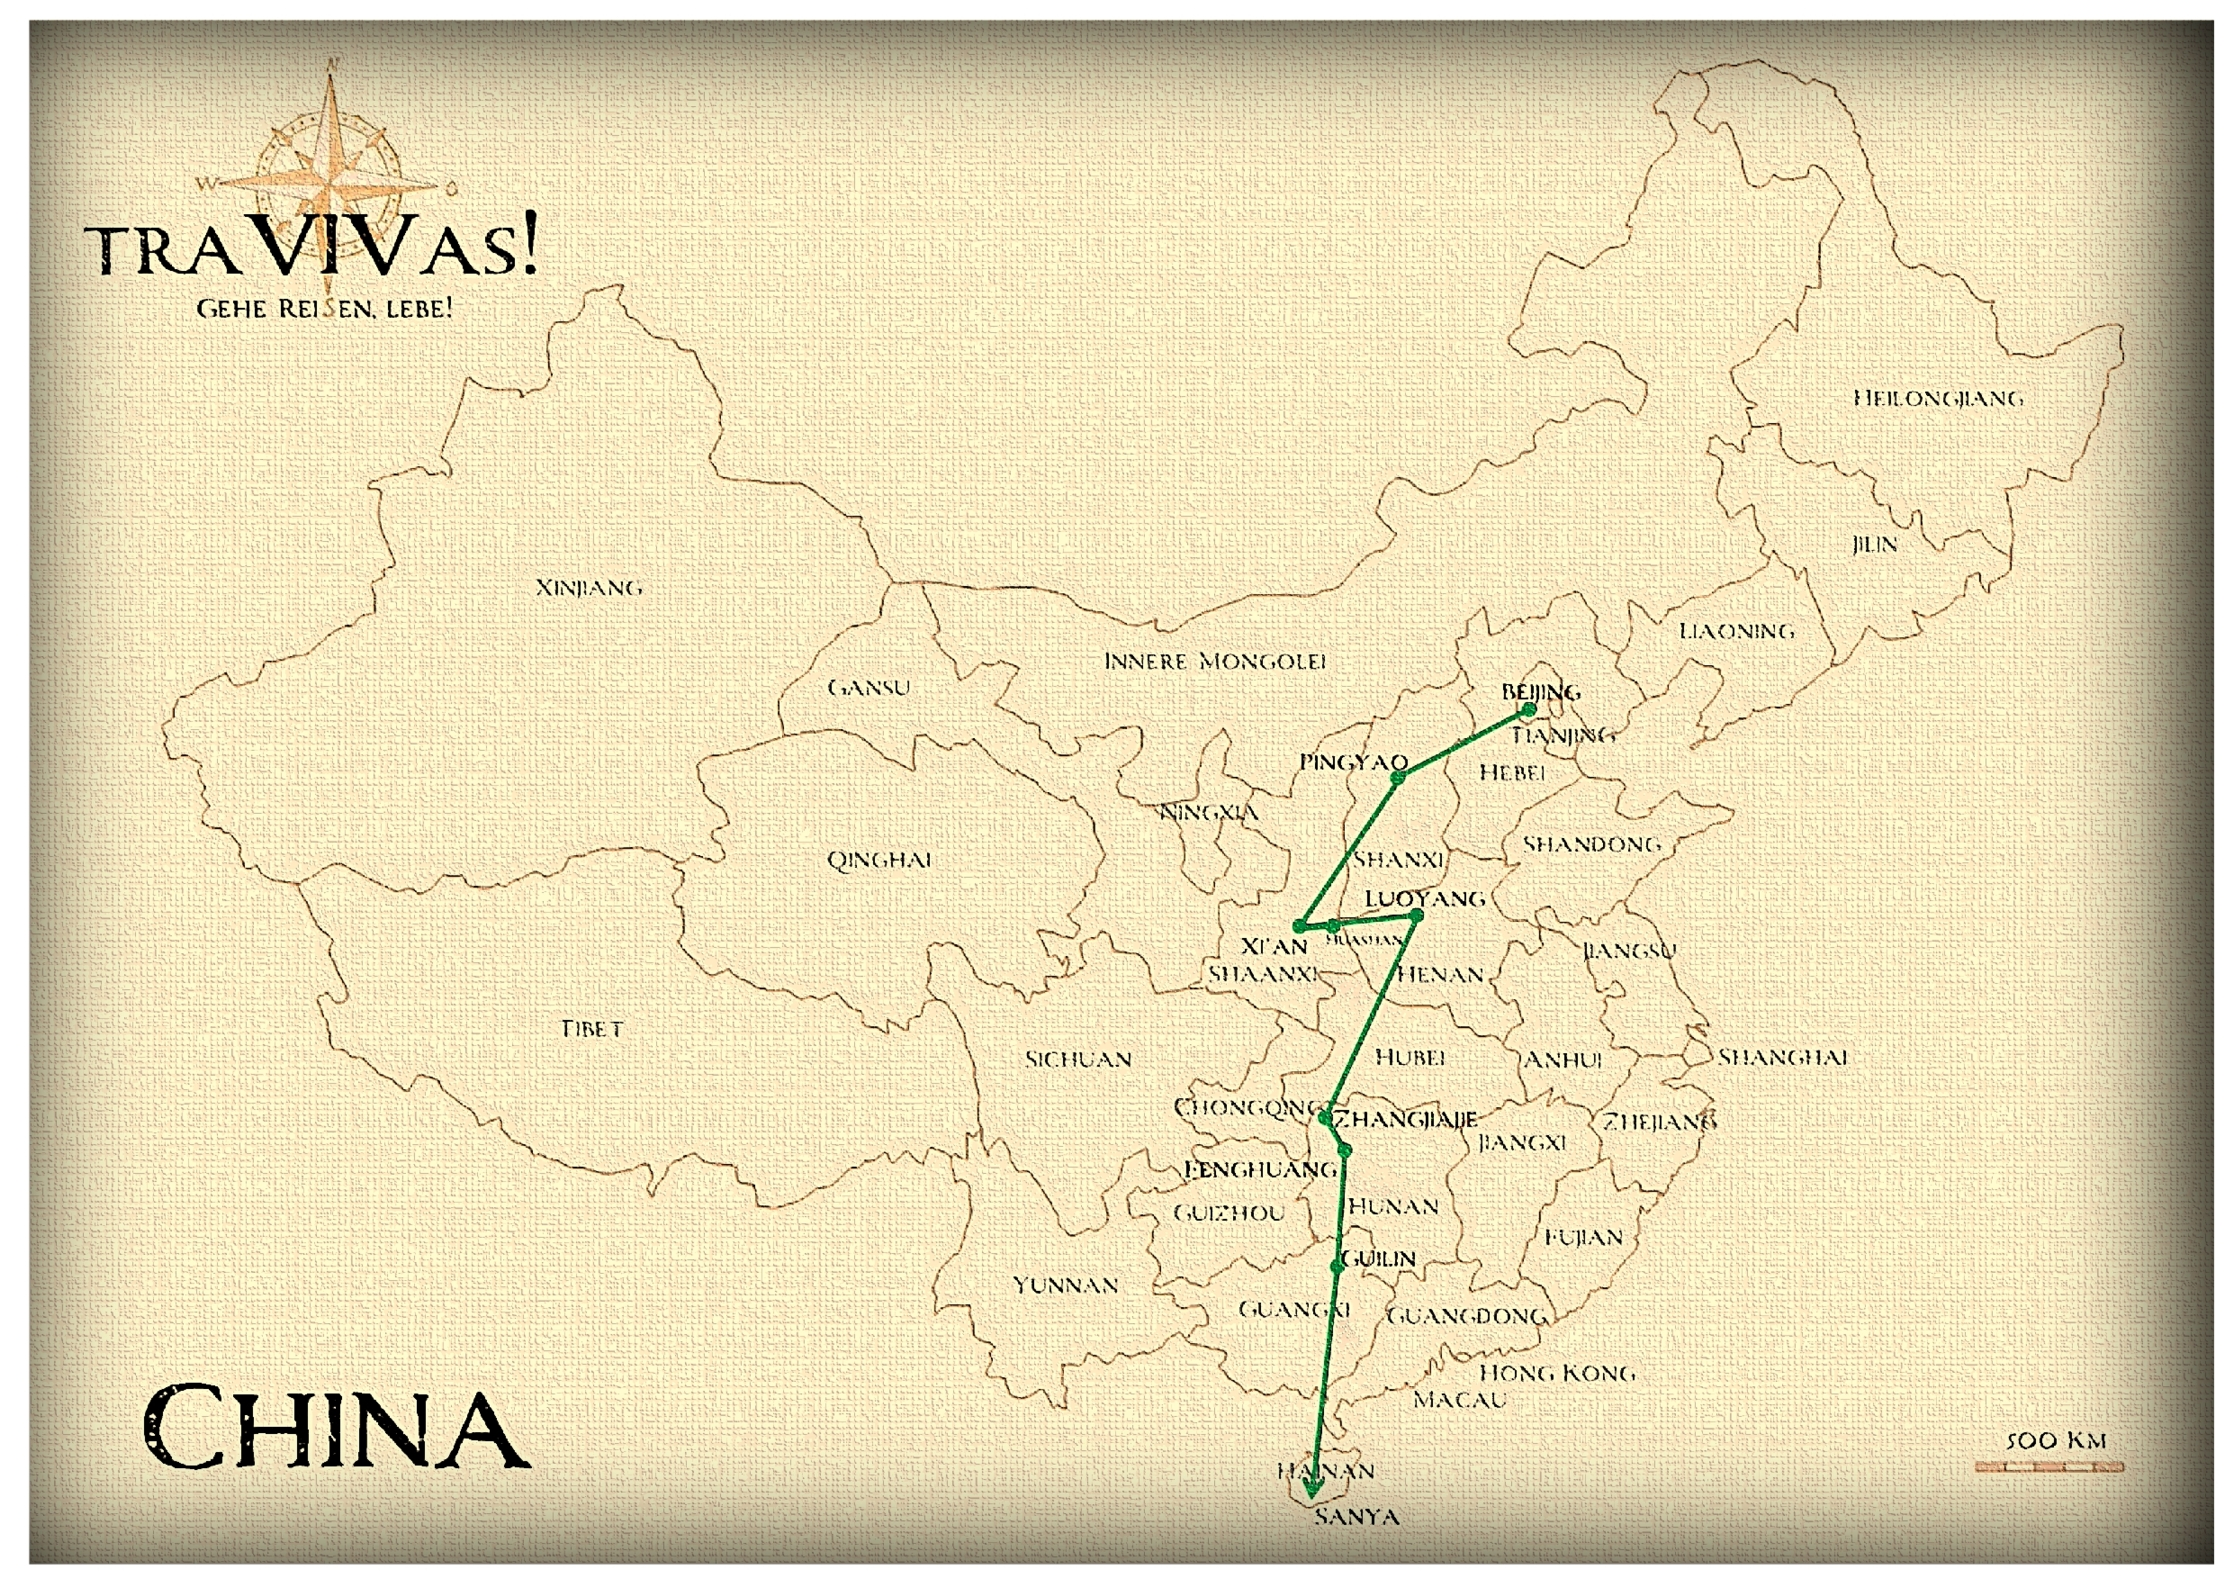 Route durch China